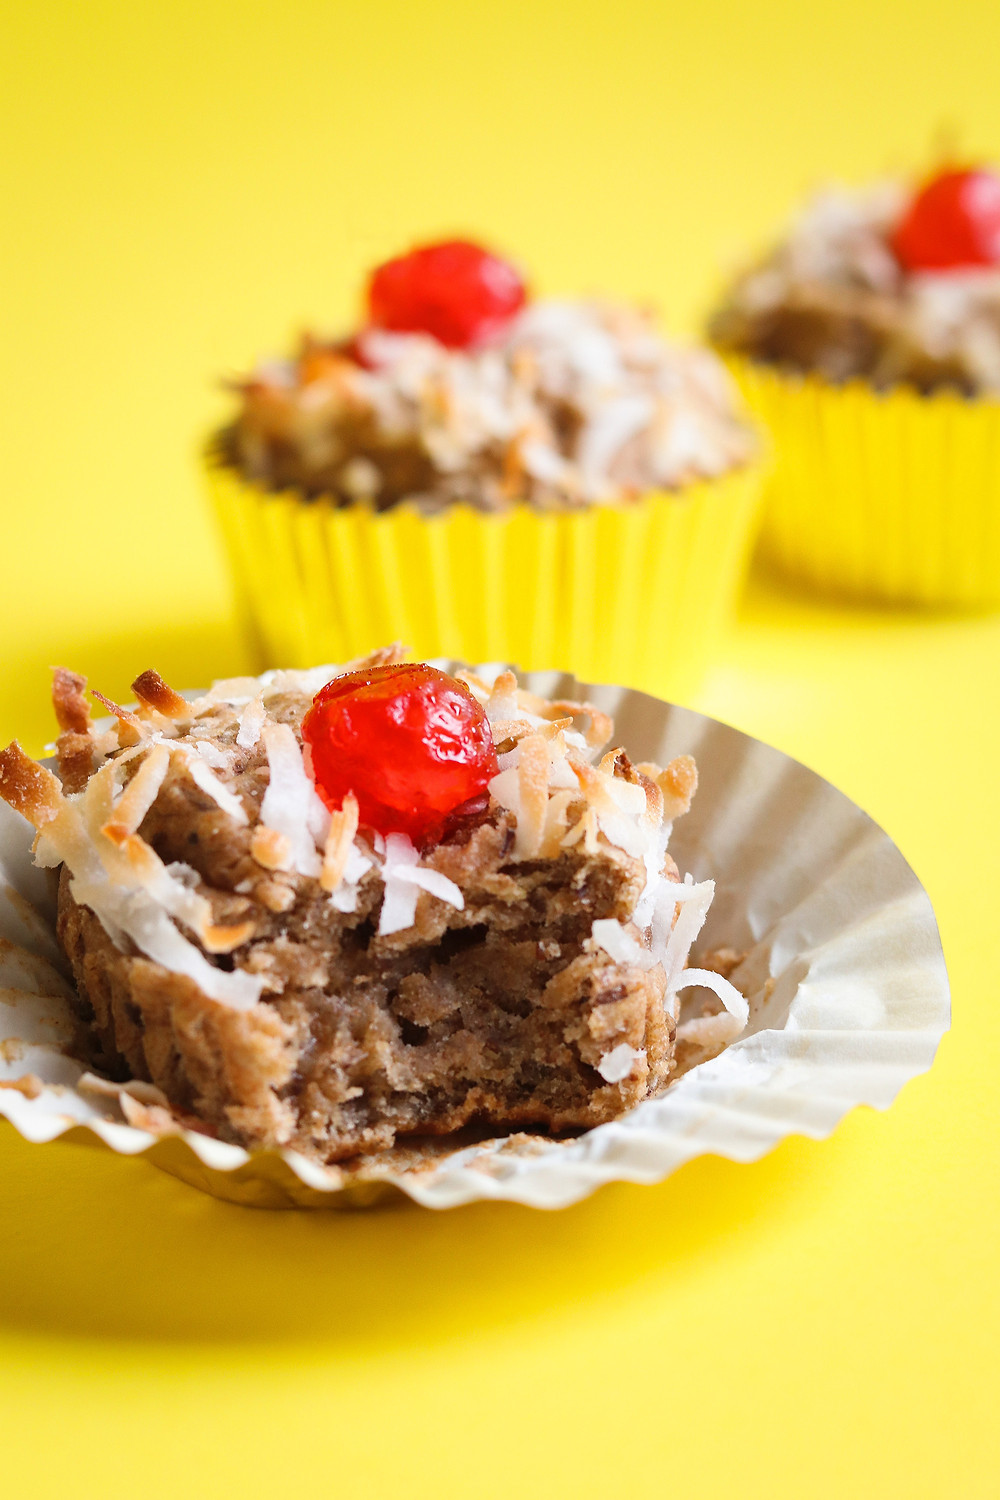 Vegan High Protein Tropical Banana Muffins garnished with Toasted Coconut and Red Cherries